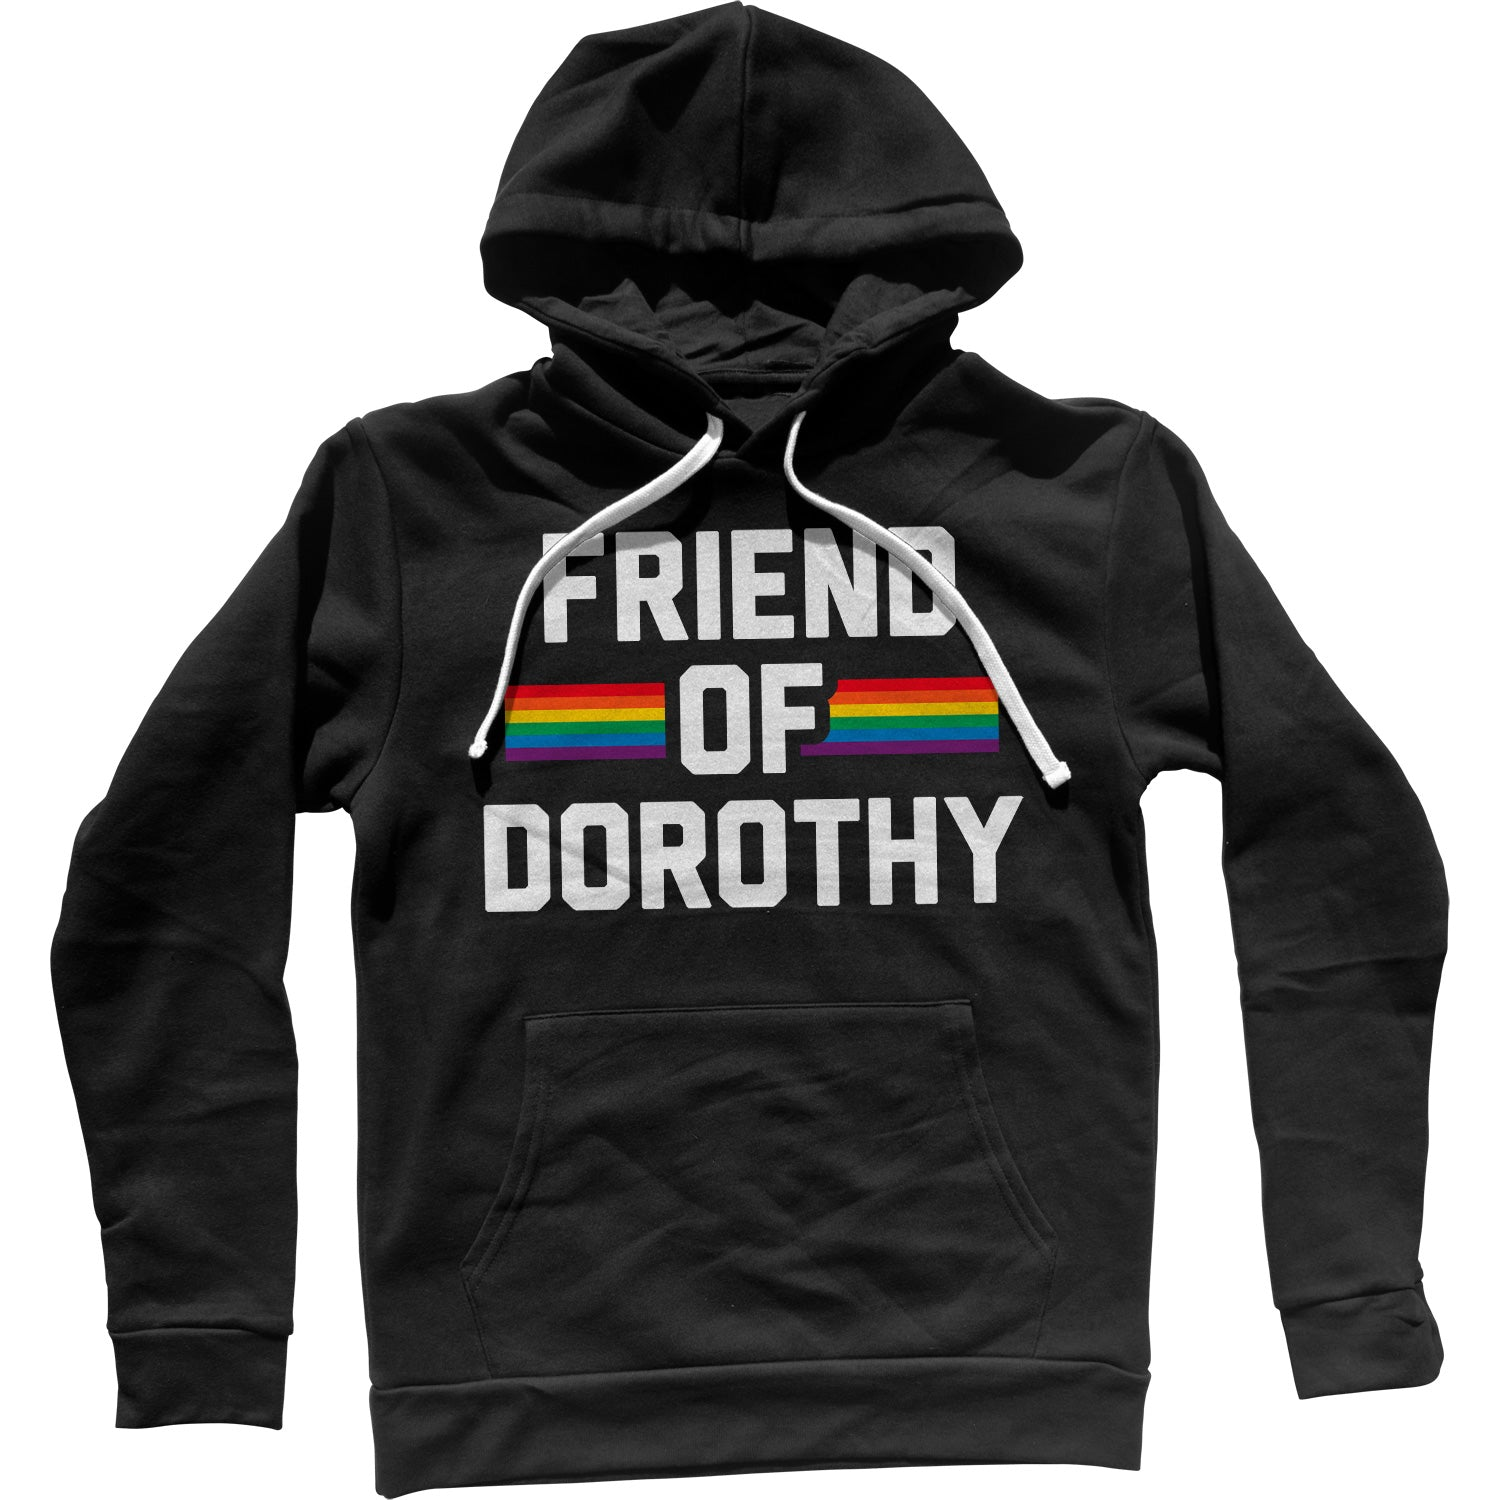 Friend Of Dorothy Gay Pride Unisex Hoodie